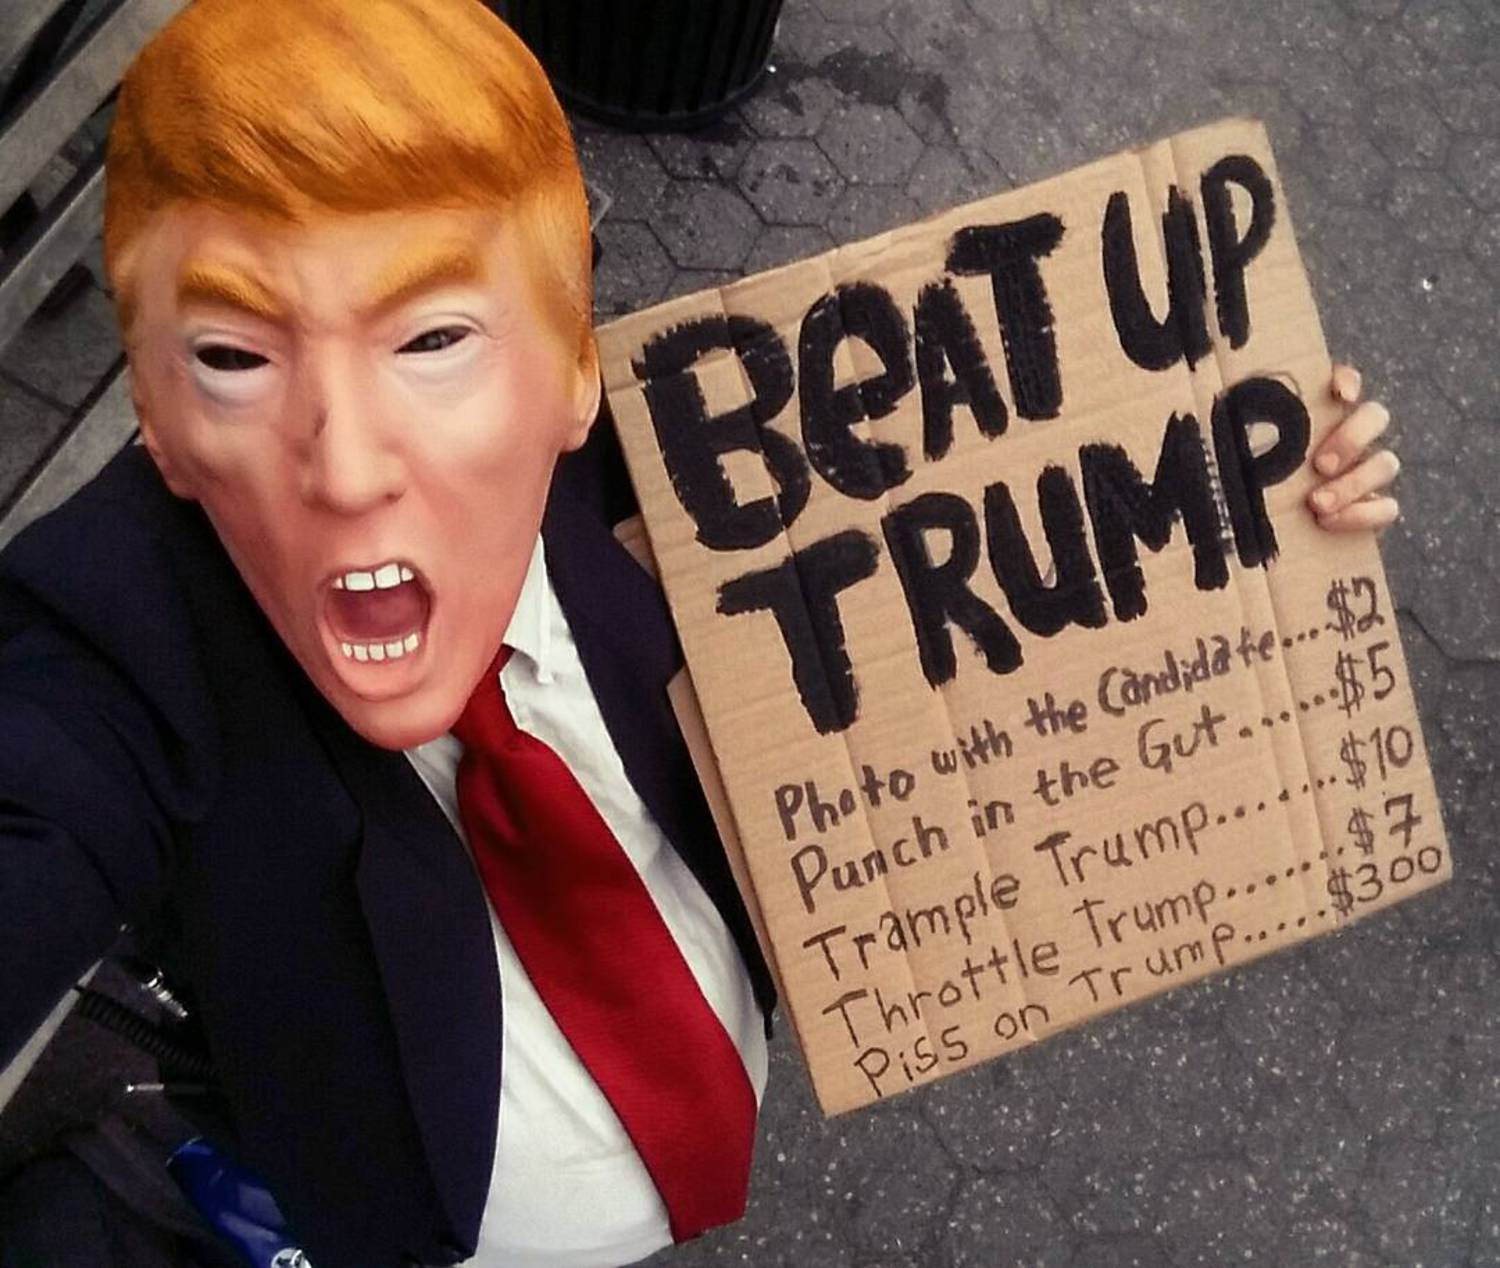 In #unionsquare this afternoon. Maybe #timessquare tonight. Gimme fodder, feed me ur thoughts n ideas. #BeatUpTrump